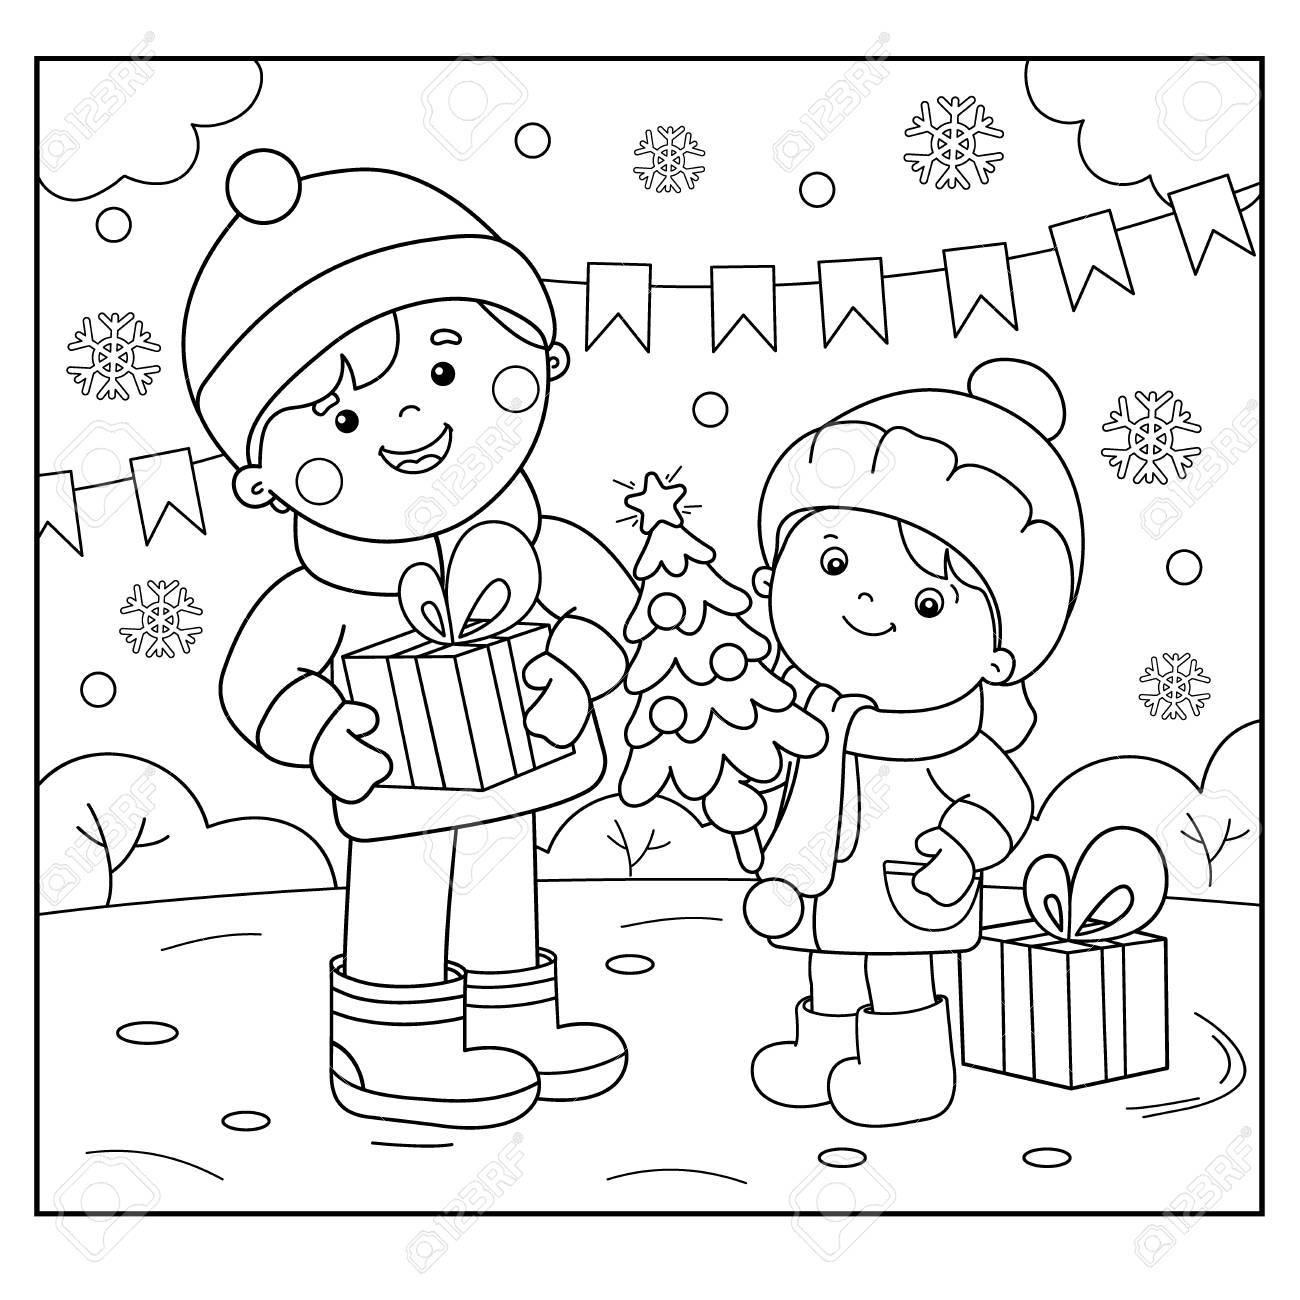 Coloring Page Outline Of Children With Gifts At Christmas Tree Royalty Free Cliparts Vectors And Stock Illustration Image 99451268